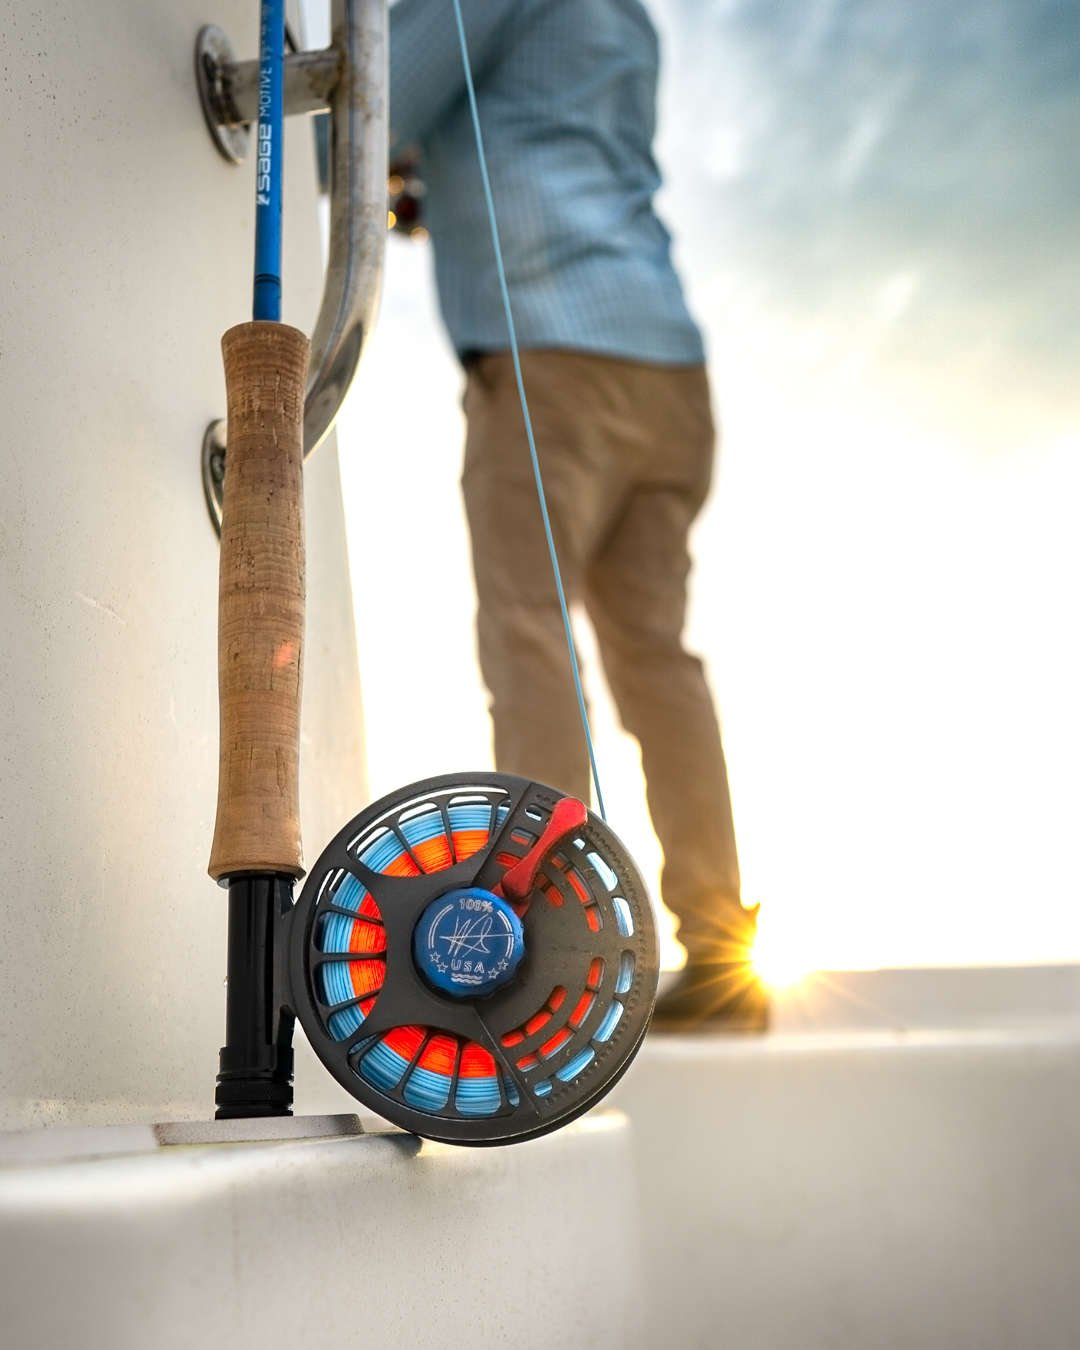 Seigler saltwater fly reel on boat with sun in background.